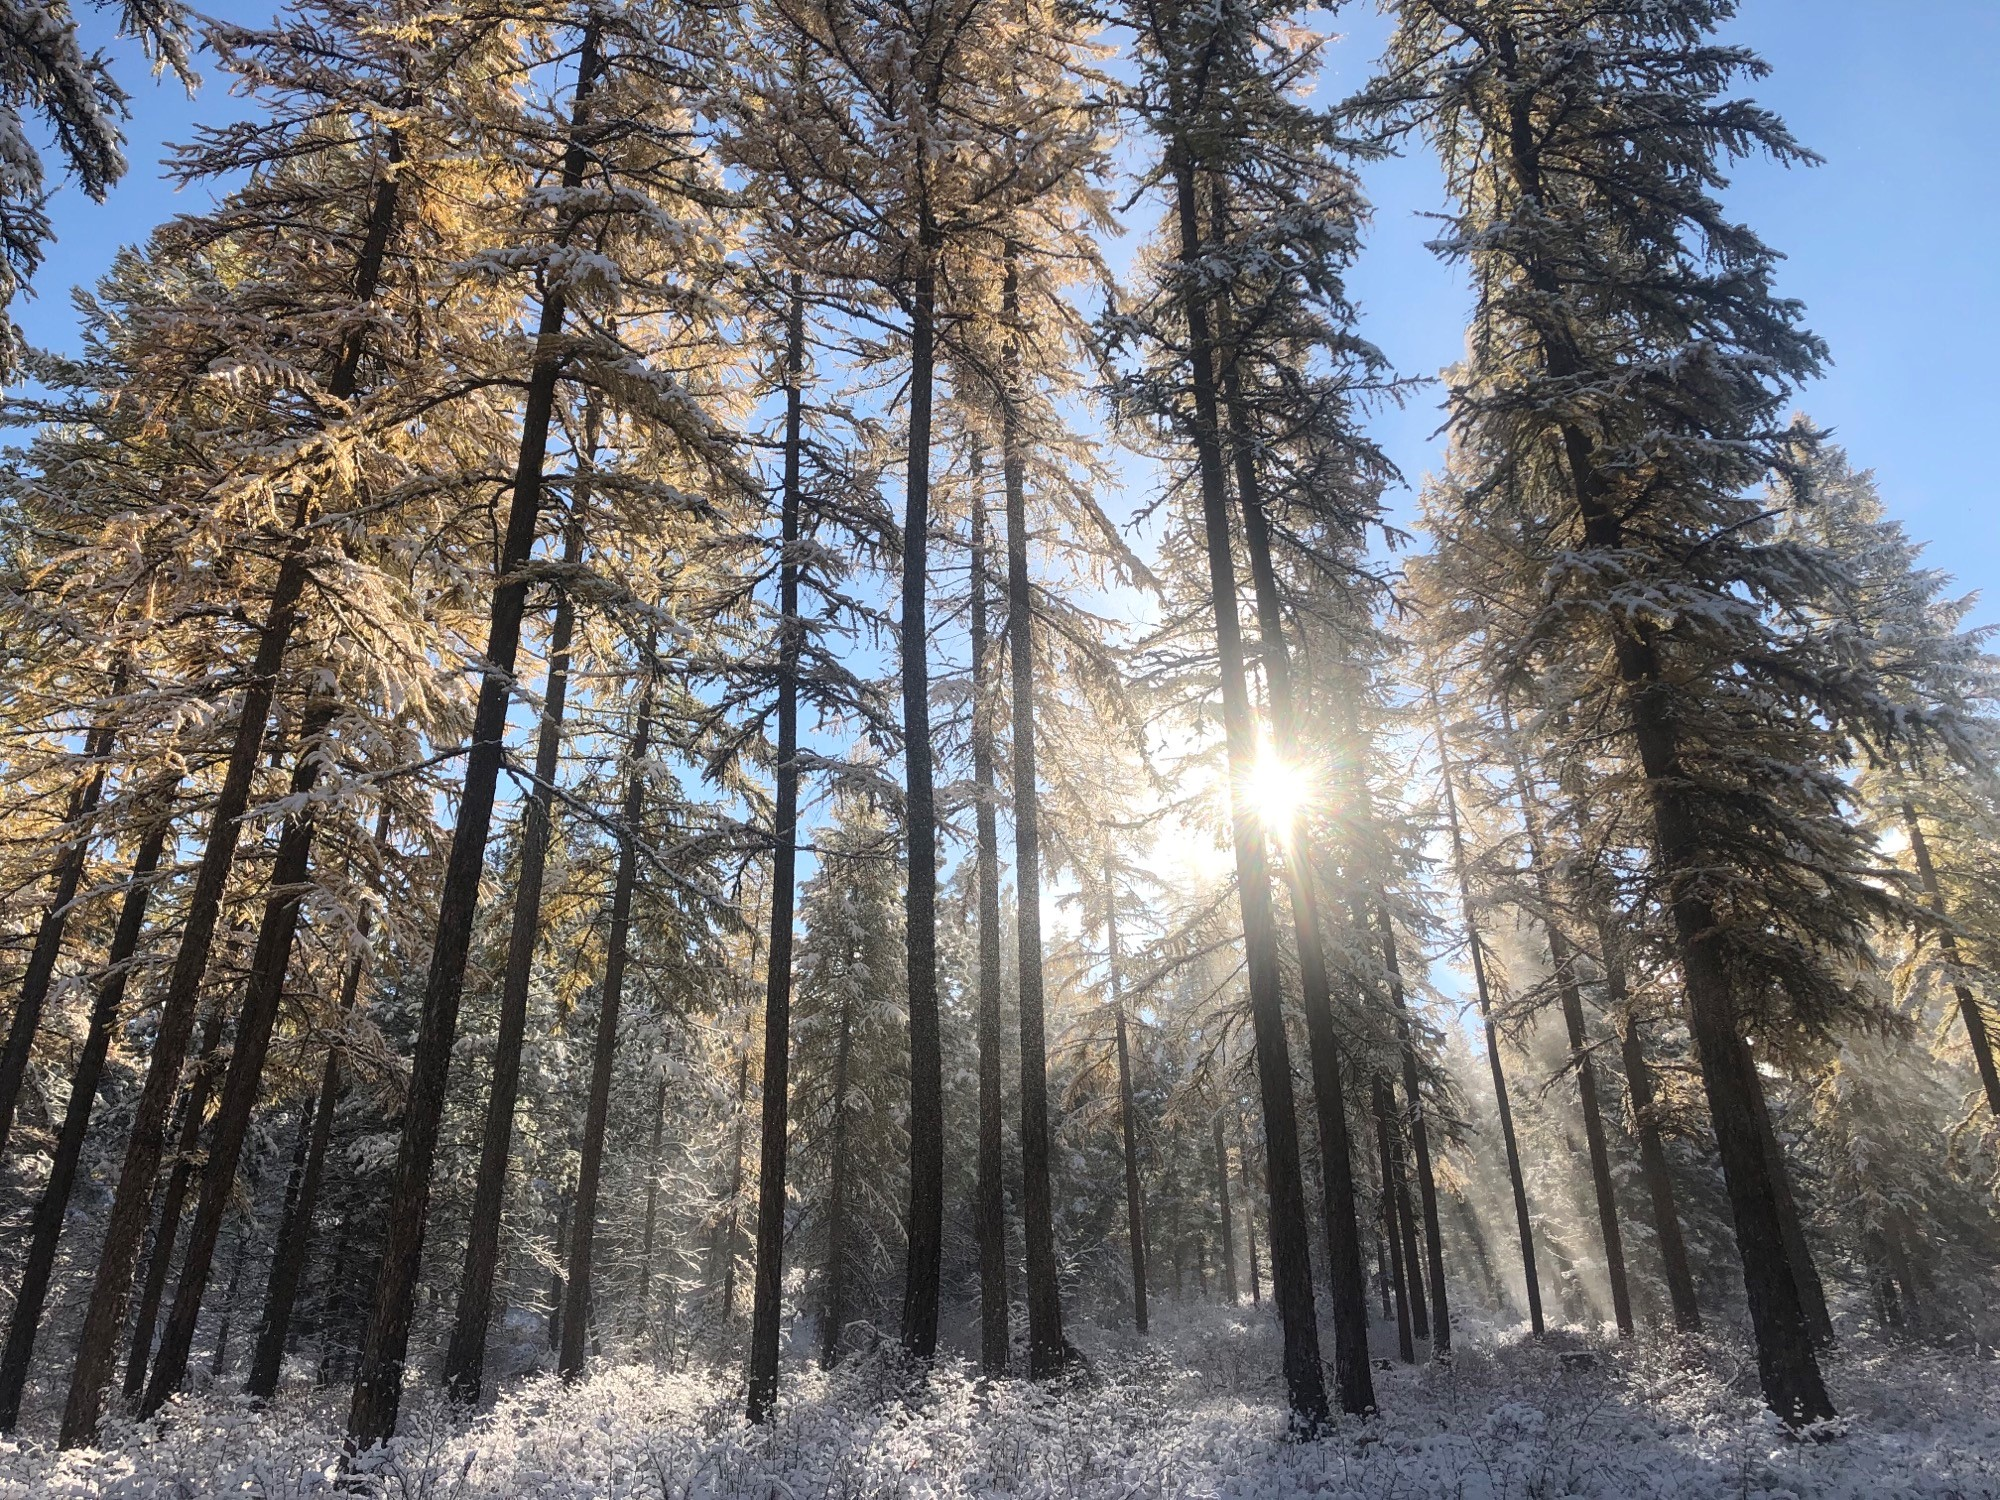 Larch trees and forest floor covered in frost in Pattee Canyon